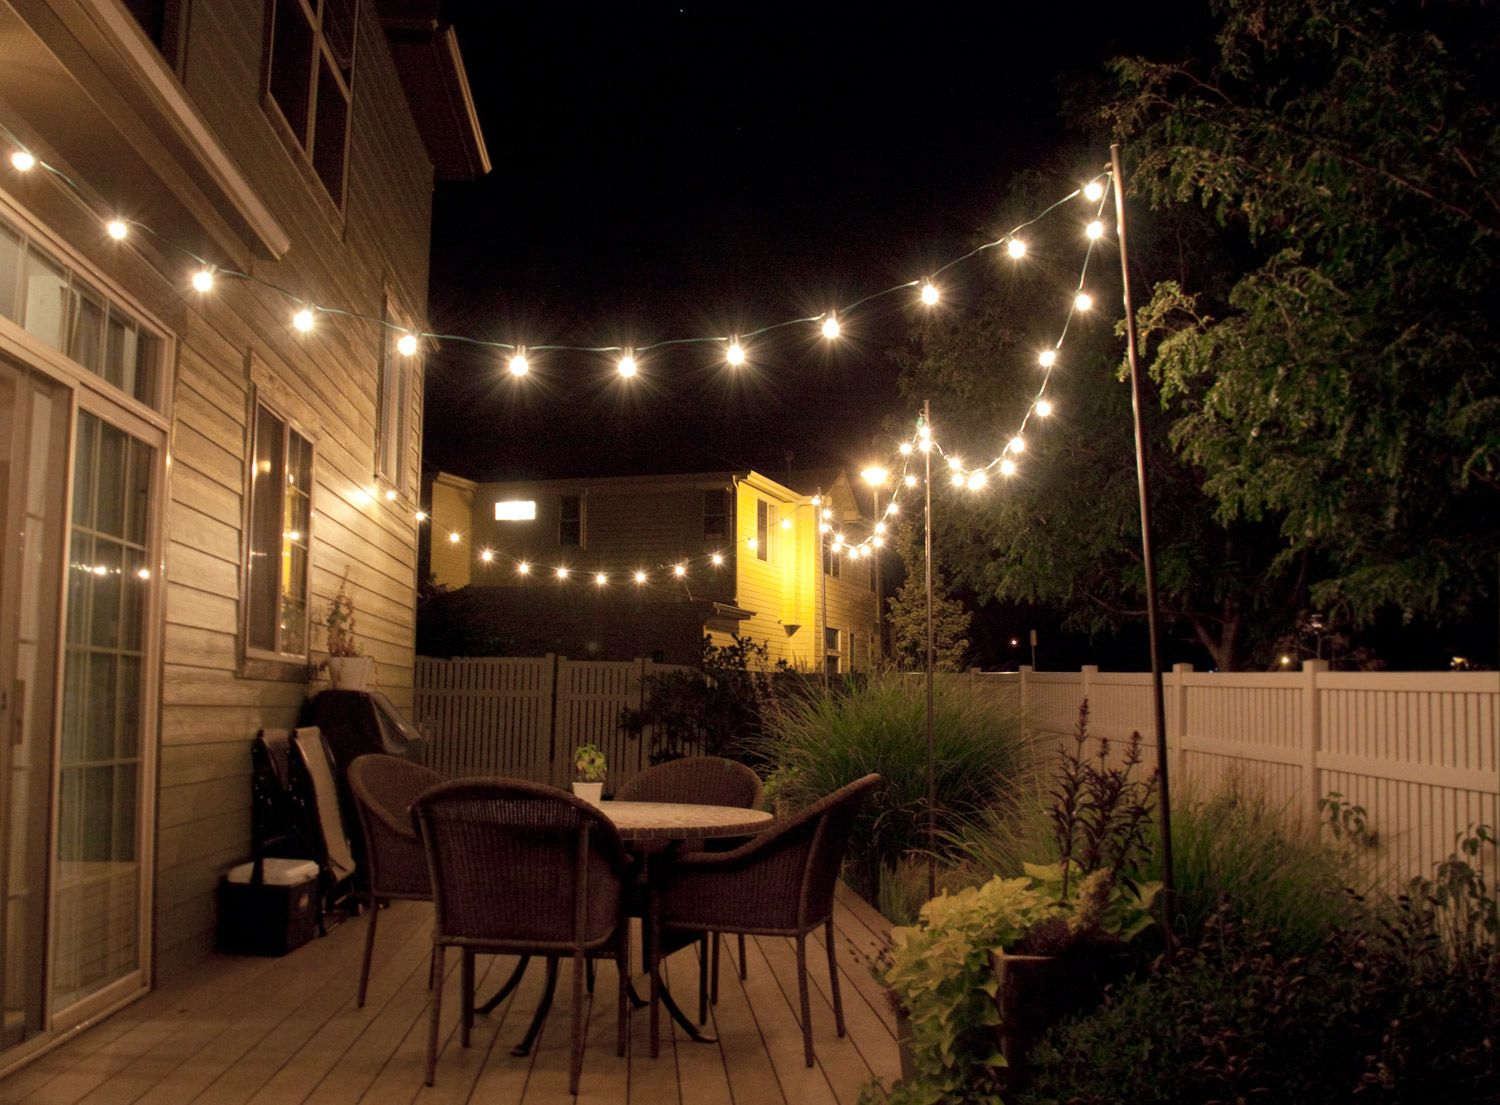 Outdoor String Lighting Ideas Brilliant How To Make Inexpensive Poles To Hang String Lights On  Café Style